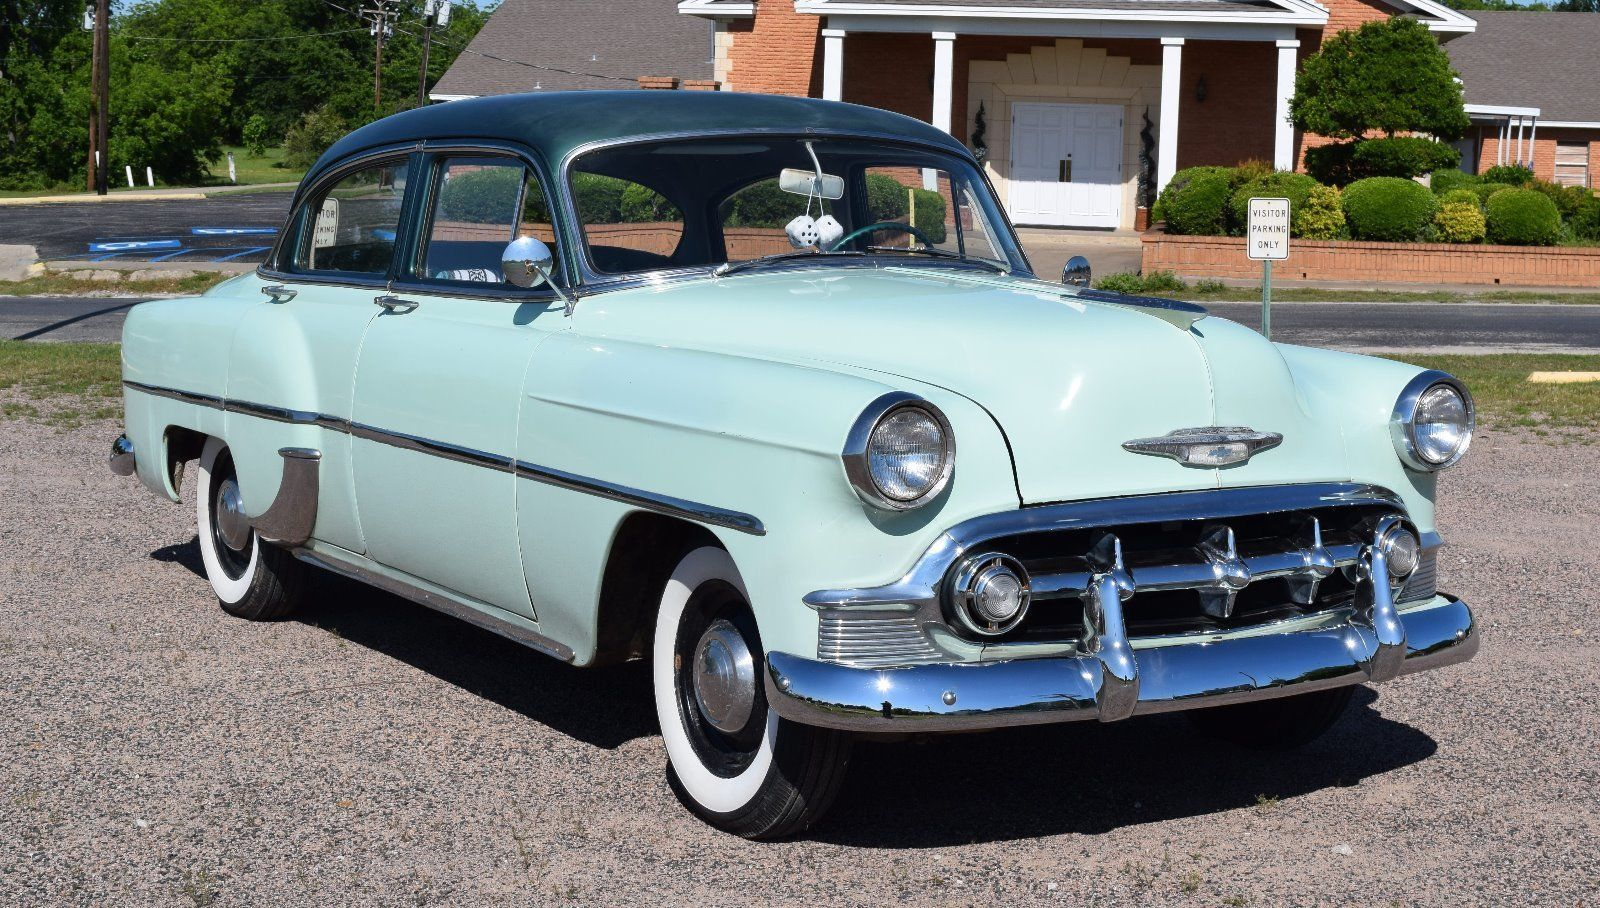 All Chevy chevy 210 : Chevrolet: Bel Air/150/210 1953 chevy 210 4 door 6 cylinder 3 ...